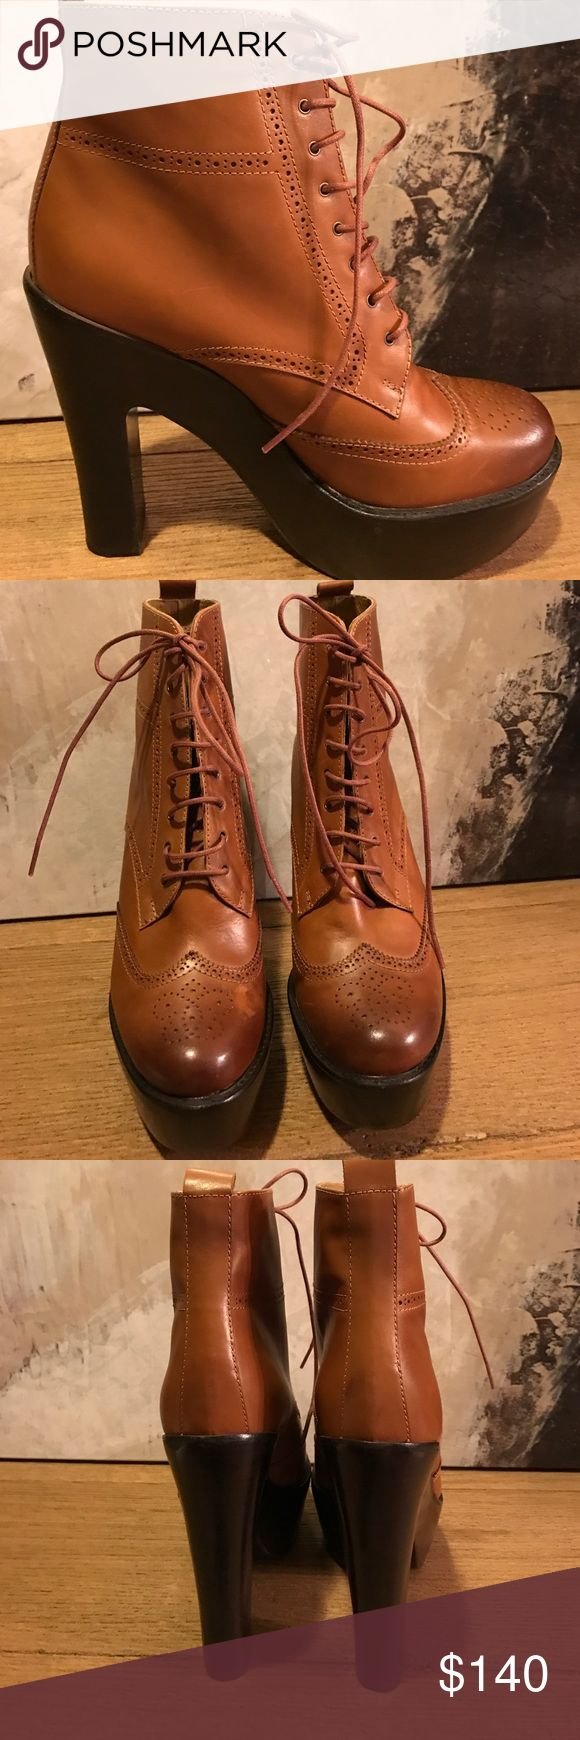 """New Ralph Lauren Platform boots size 41(11) New Polo Ralph Lauren Leather Platform boots. Menswear inspired leather oxfords. Stacked heel 6"""", Platform 2"""", cap toe.  Brown leather upper lace up front. Size 41 (11).  New (no box/tag). Ships same day Polo by Ralph Lauren Shoes Ankle Boots & Booties"""